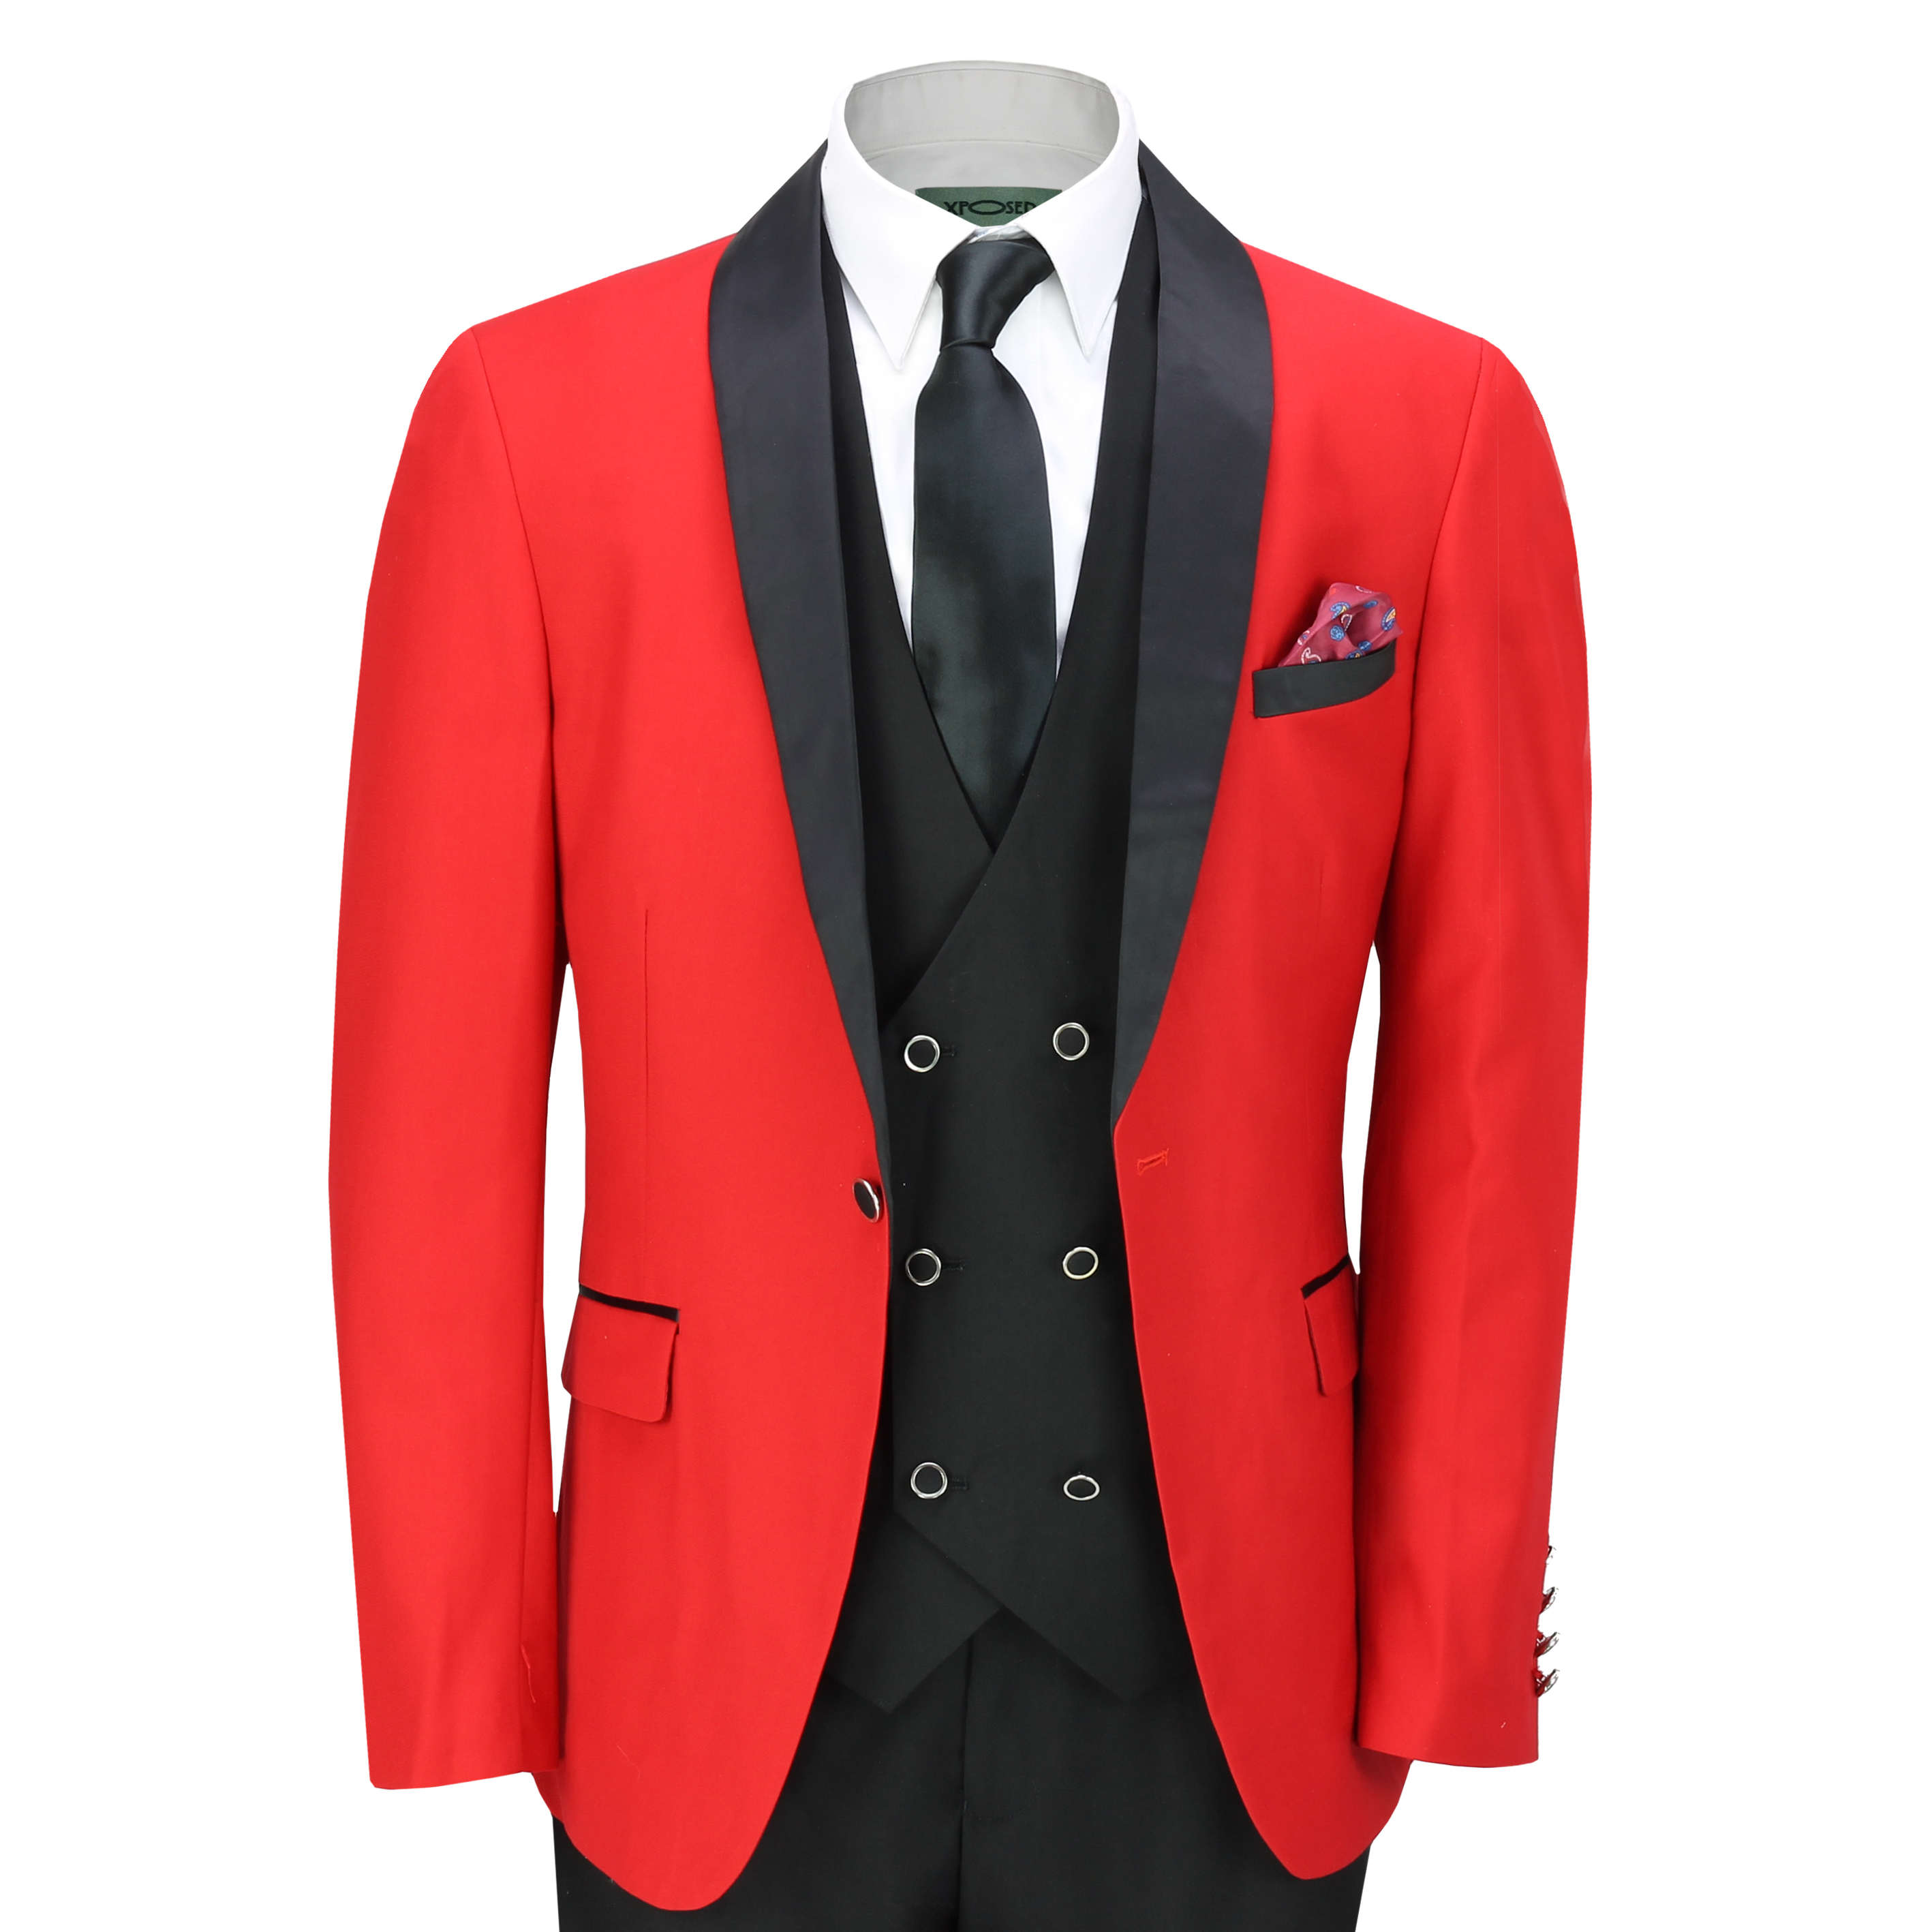 c68cf86acb9 Details about Mens 3 Piece Tuxedo Suit Formal Wedding Party Tailored Fit Dinner  Jacket in Red